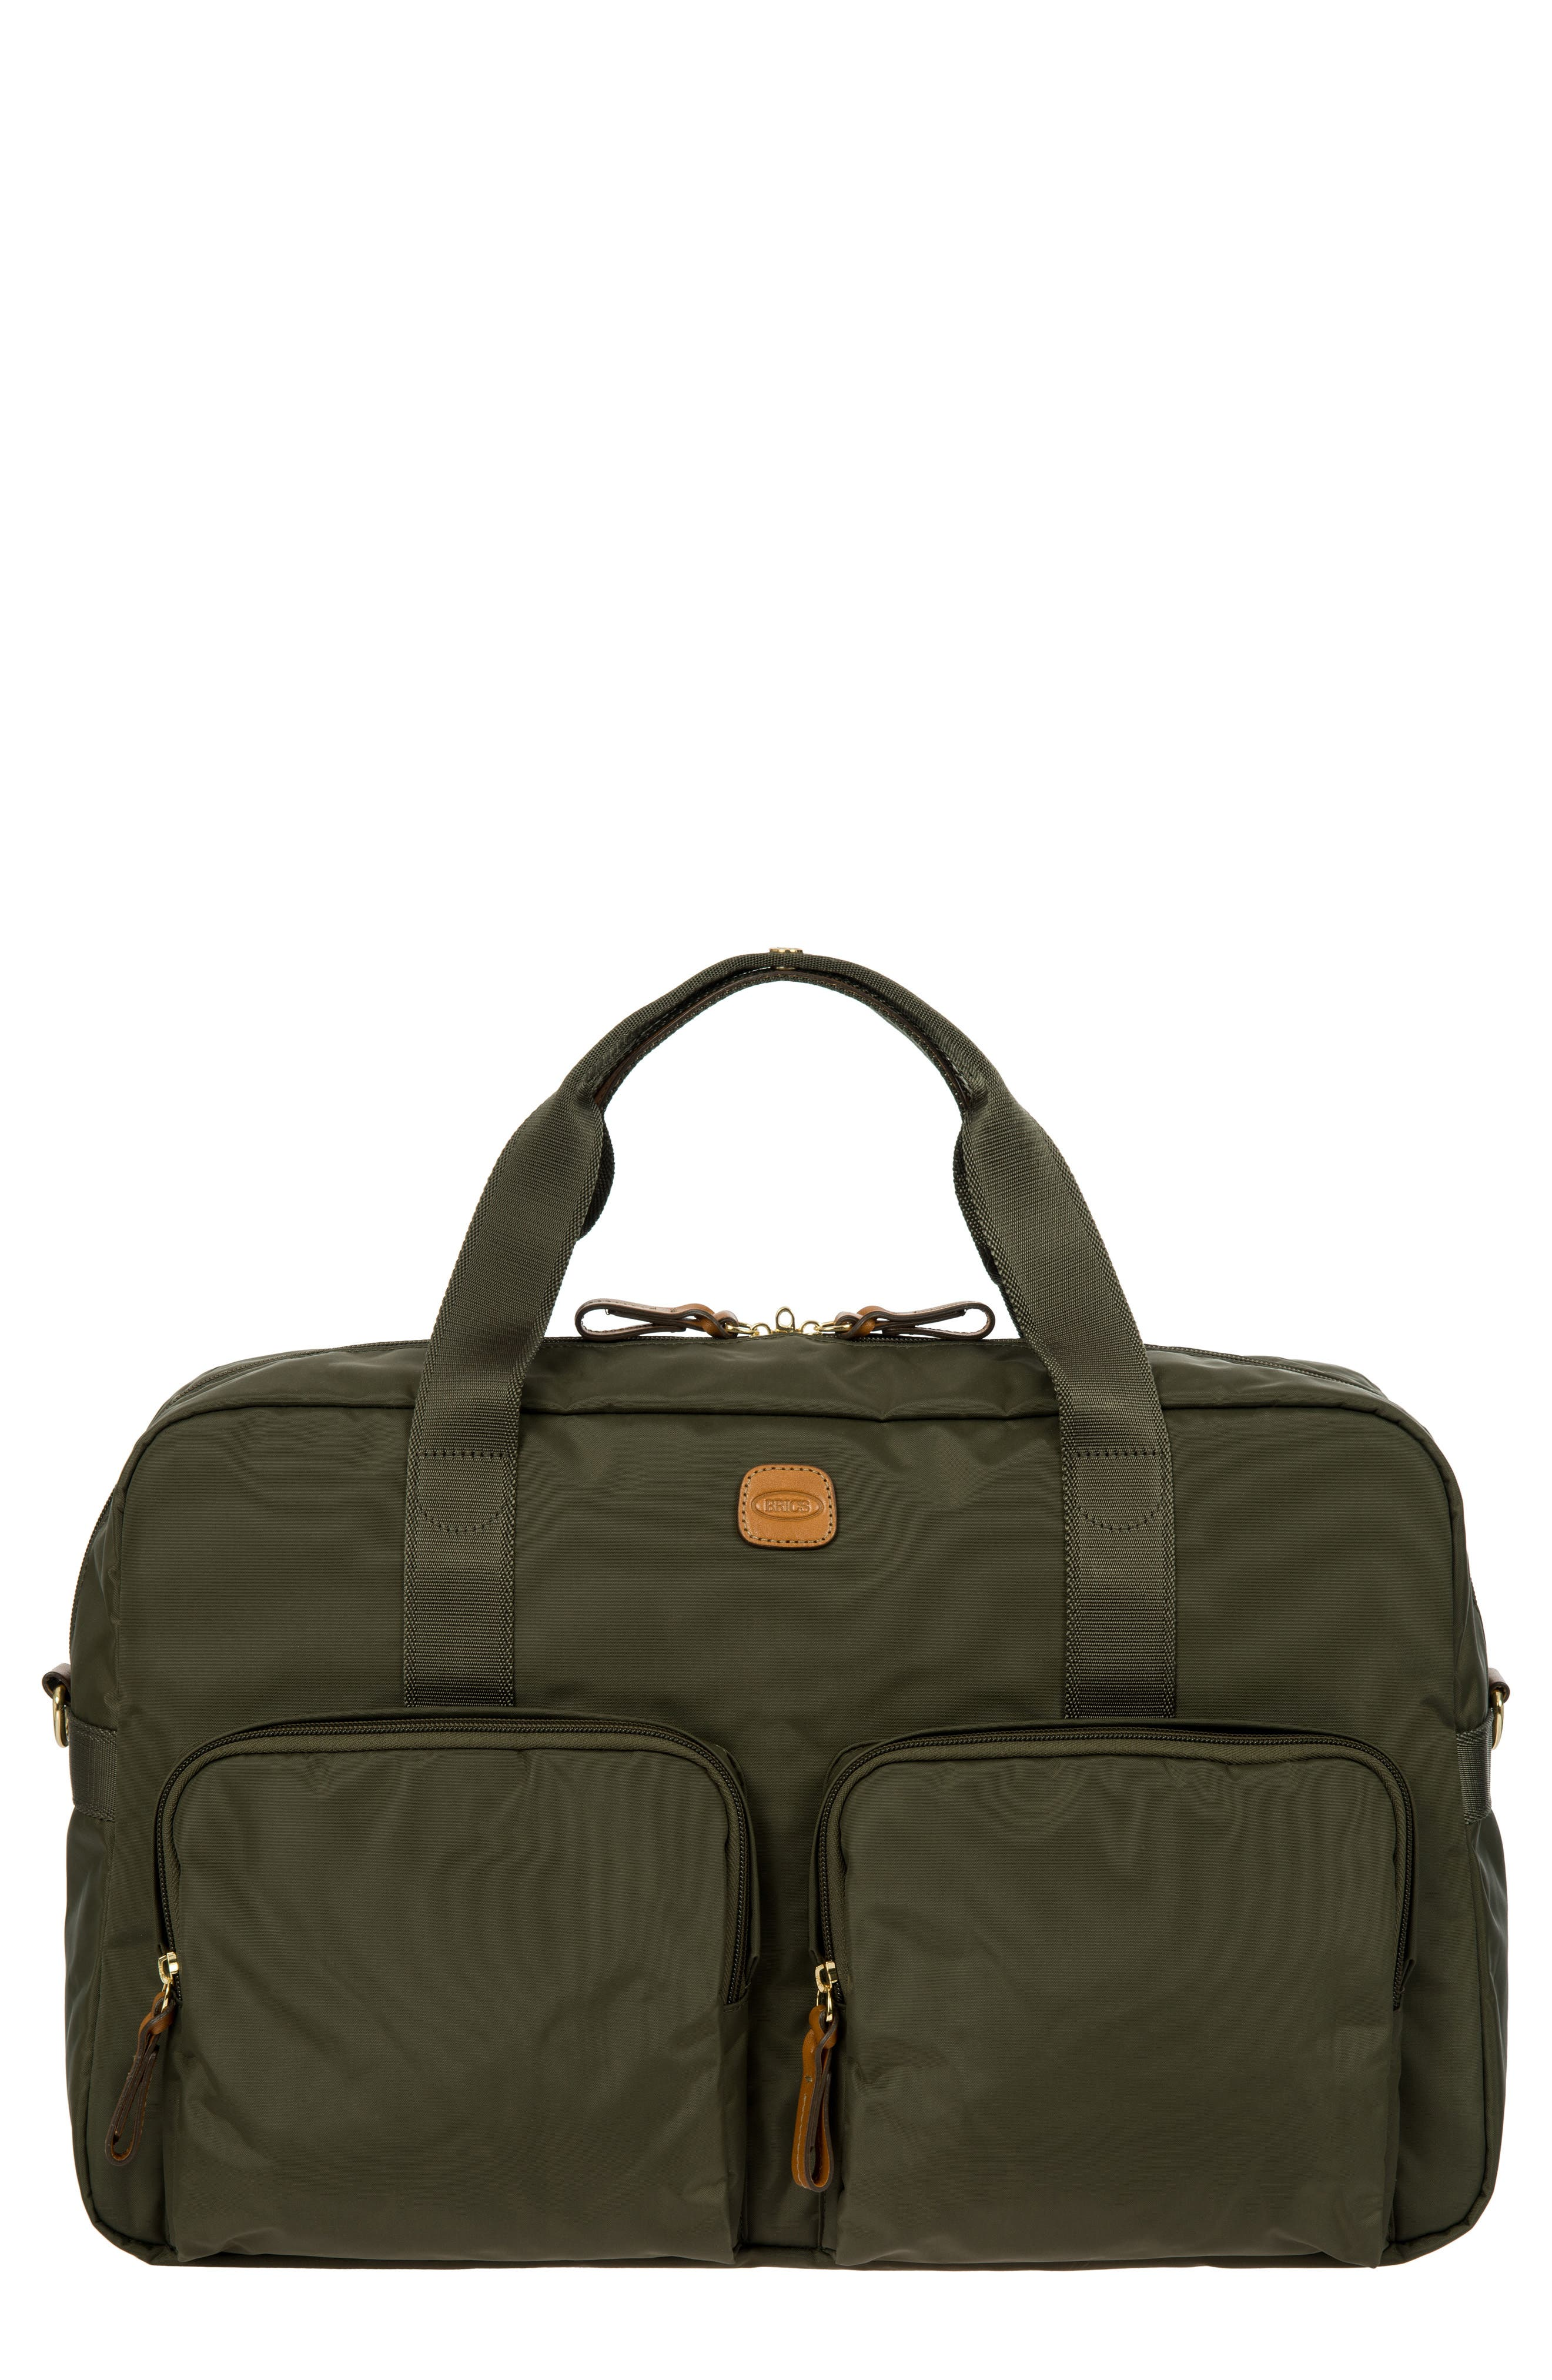 BRIC'S X-Bag Boarding 18-Inch Duffel Bag - Green in Olive